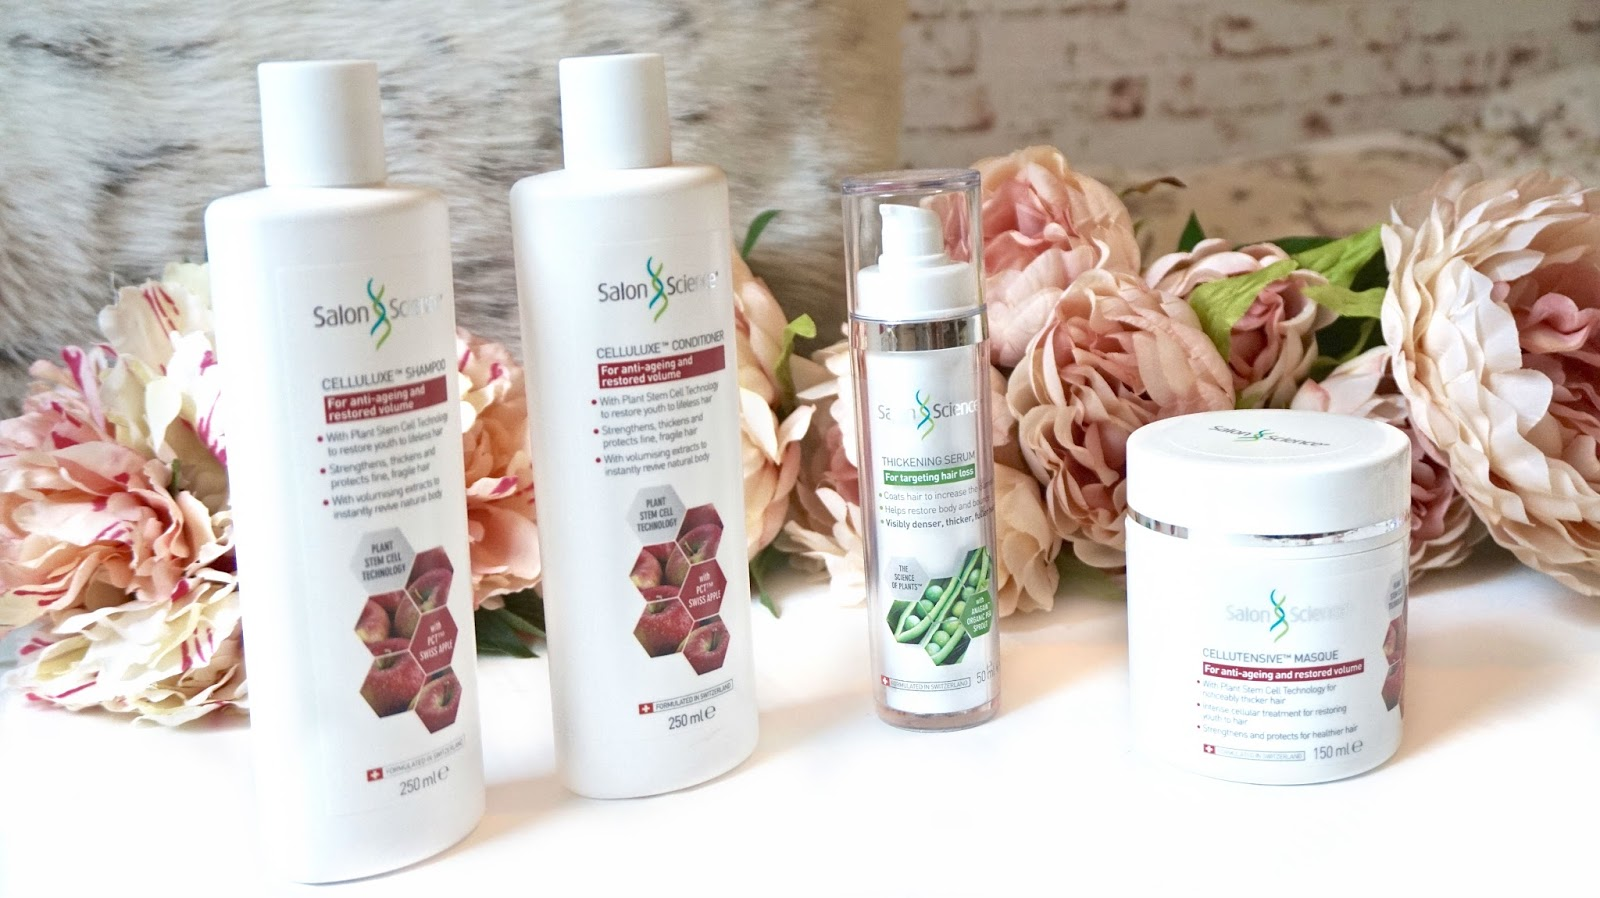 Salon Science Haircare